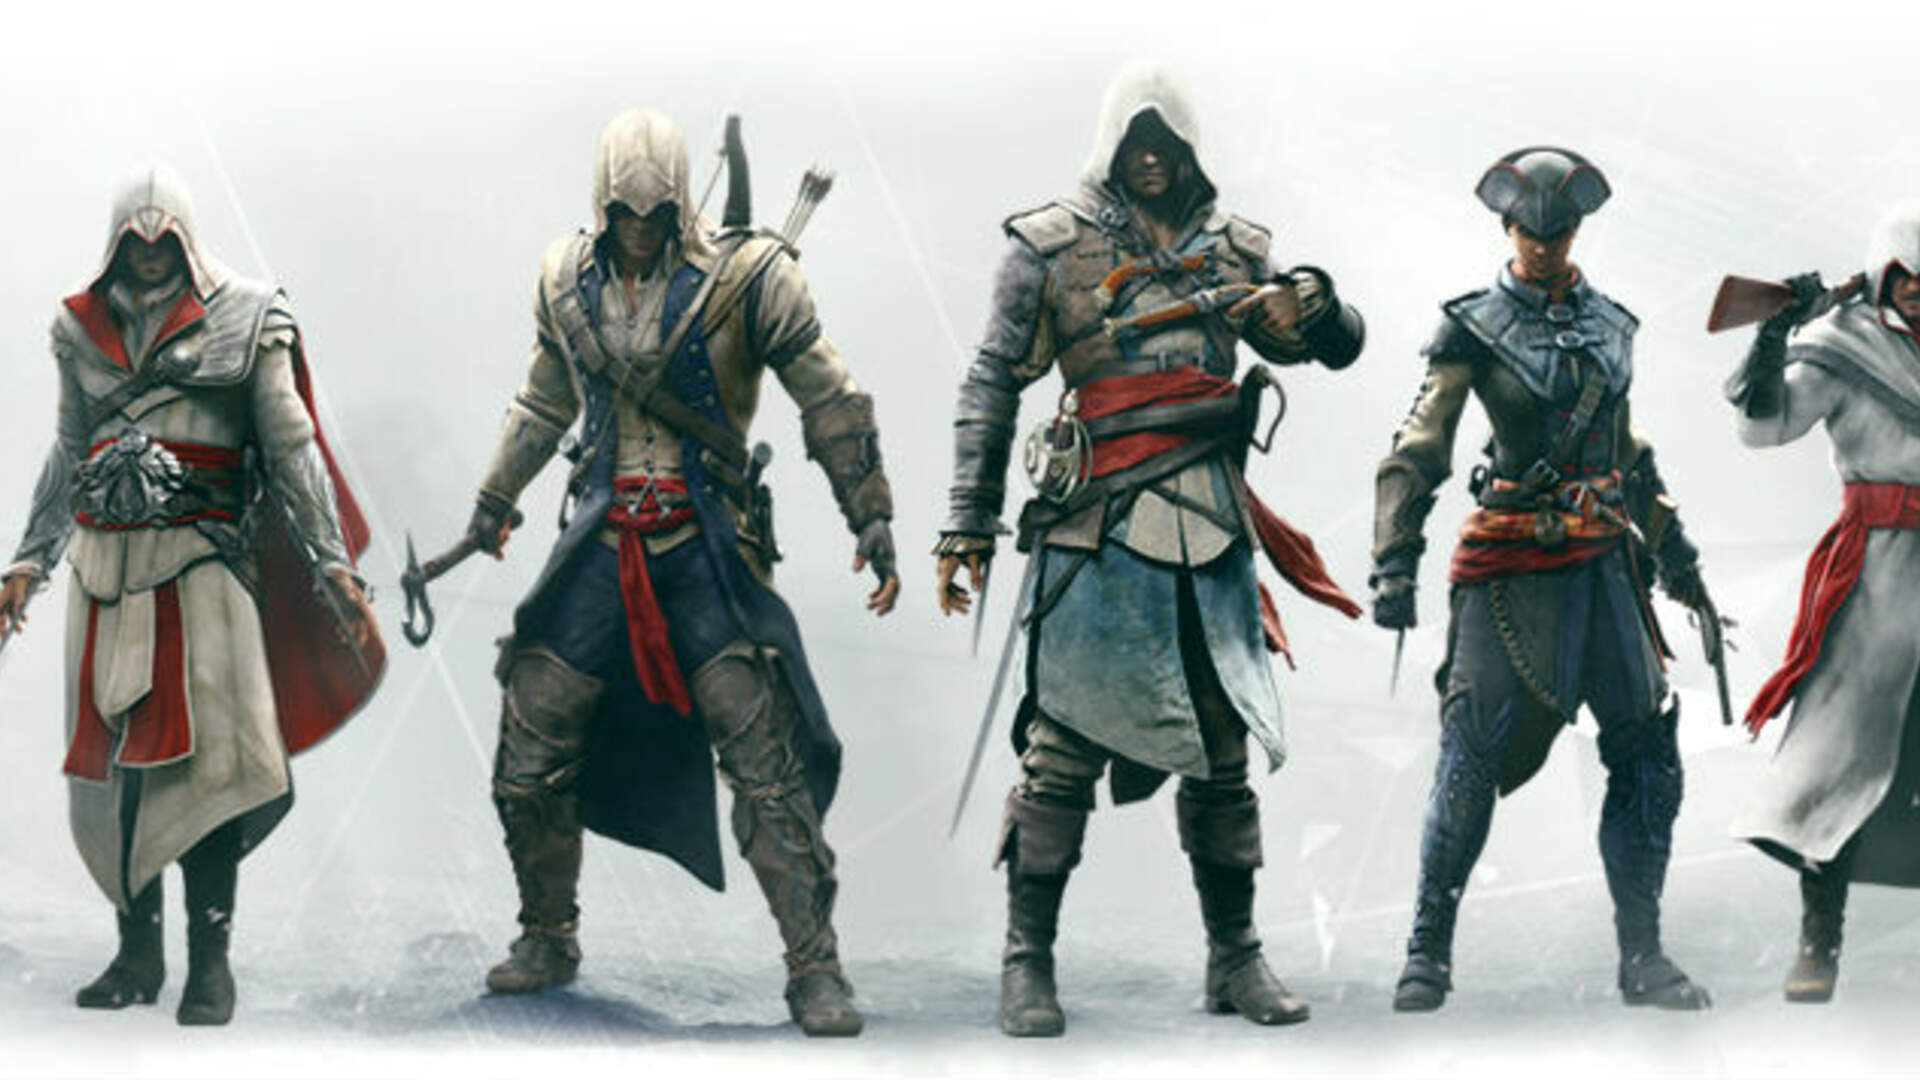 What S Next For Assassin S Creed Signs Point To Russia Not